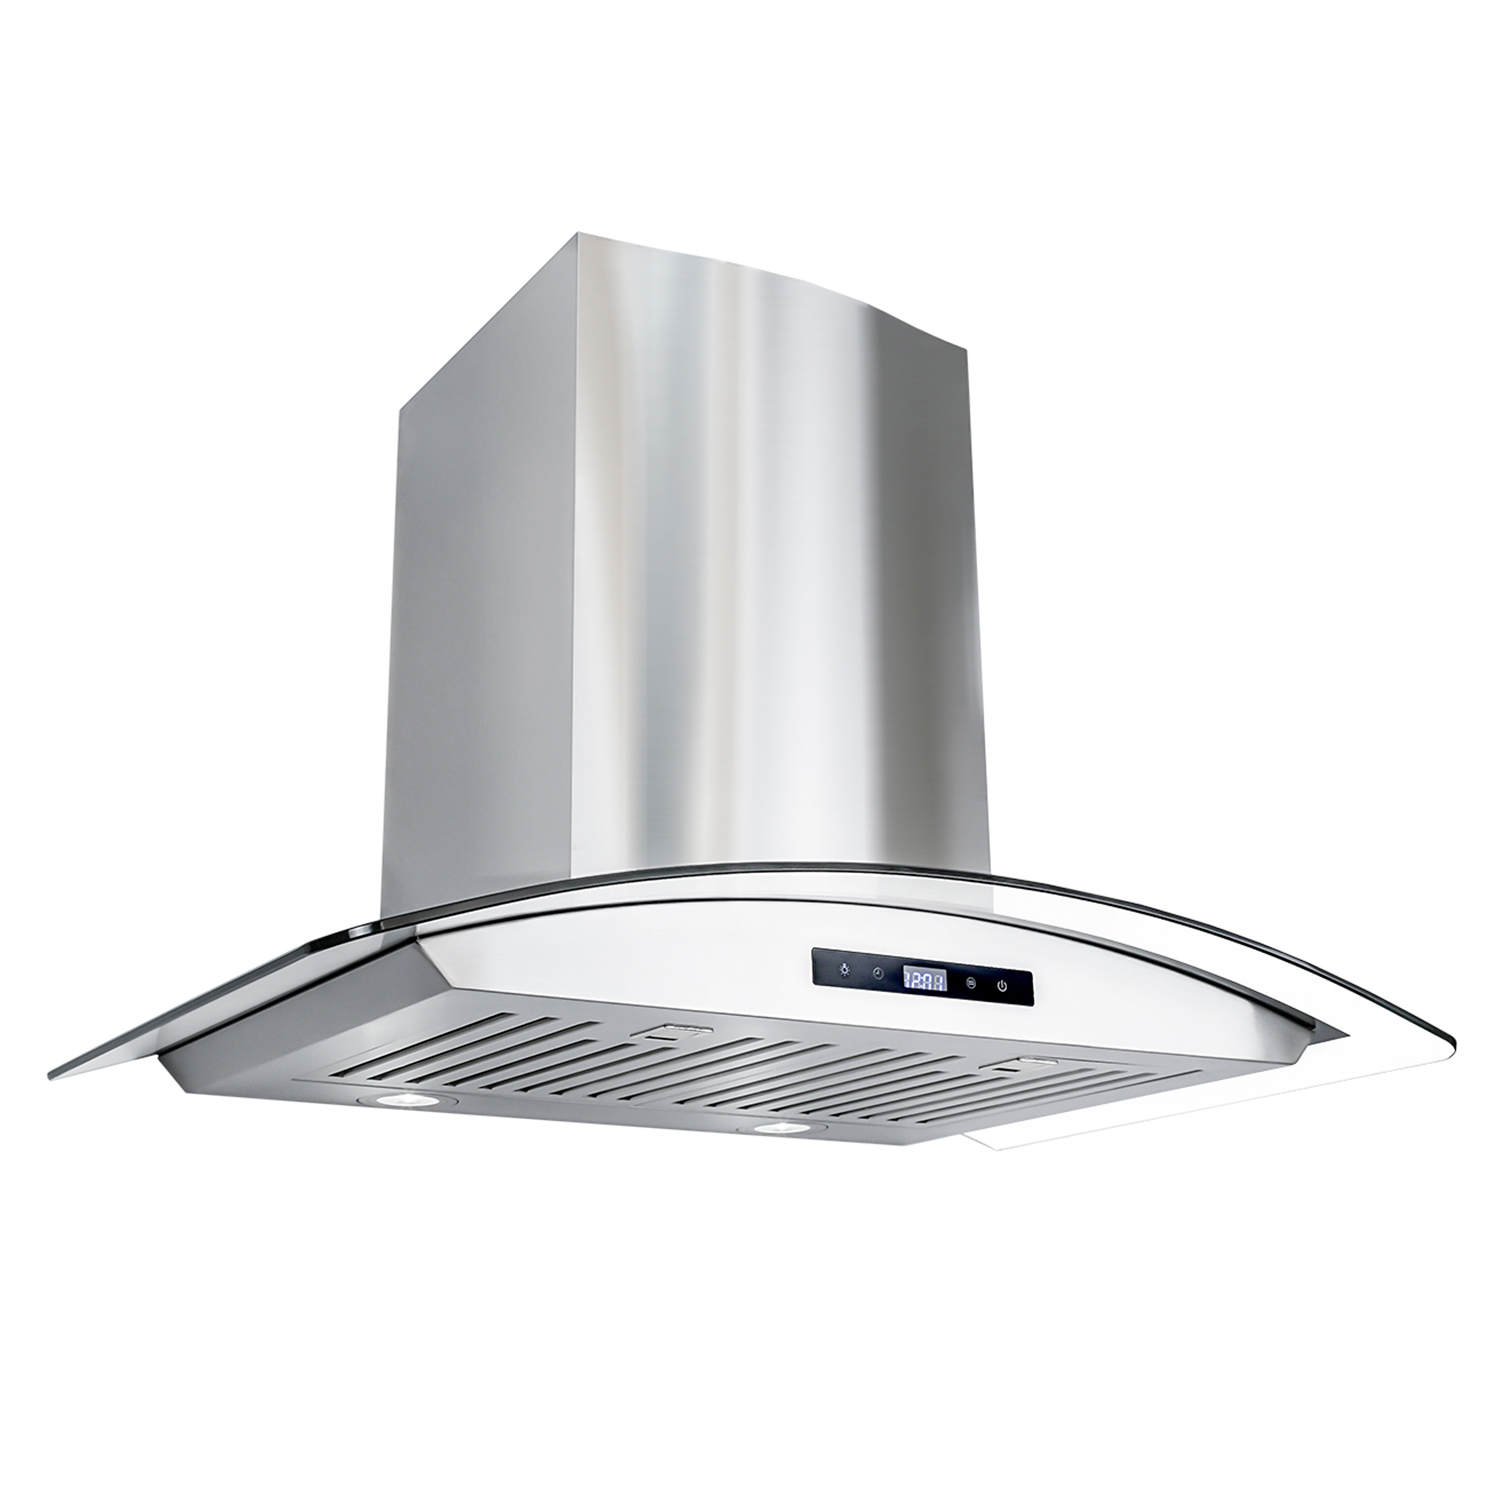 30 Range Hood ~ In wall mount range hood with touch controls cosmo